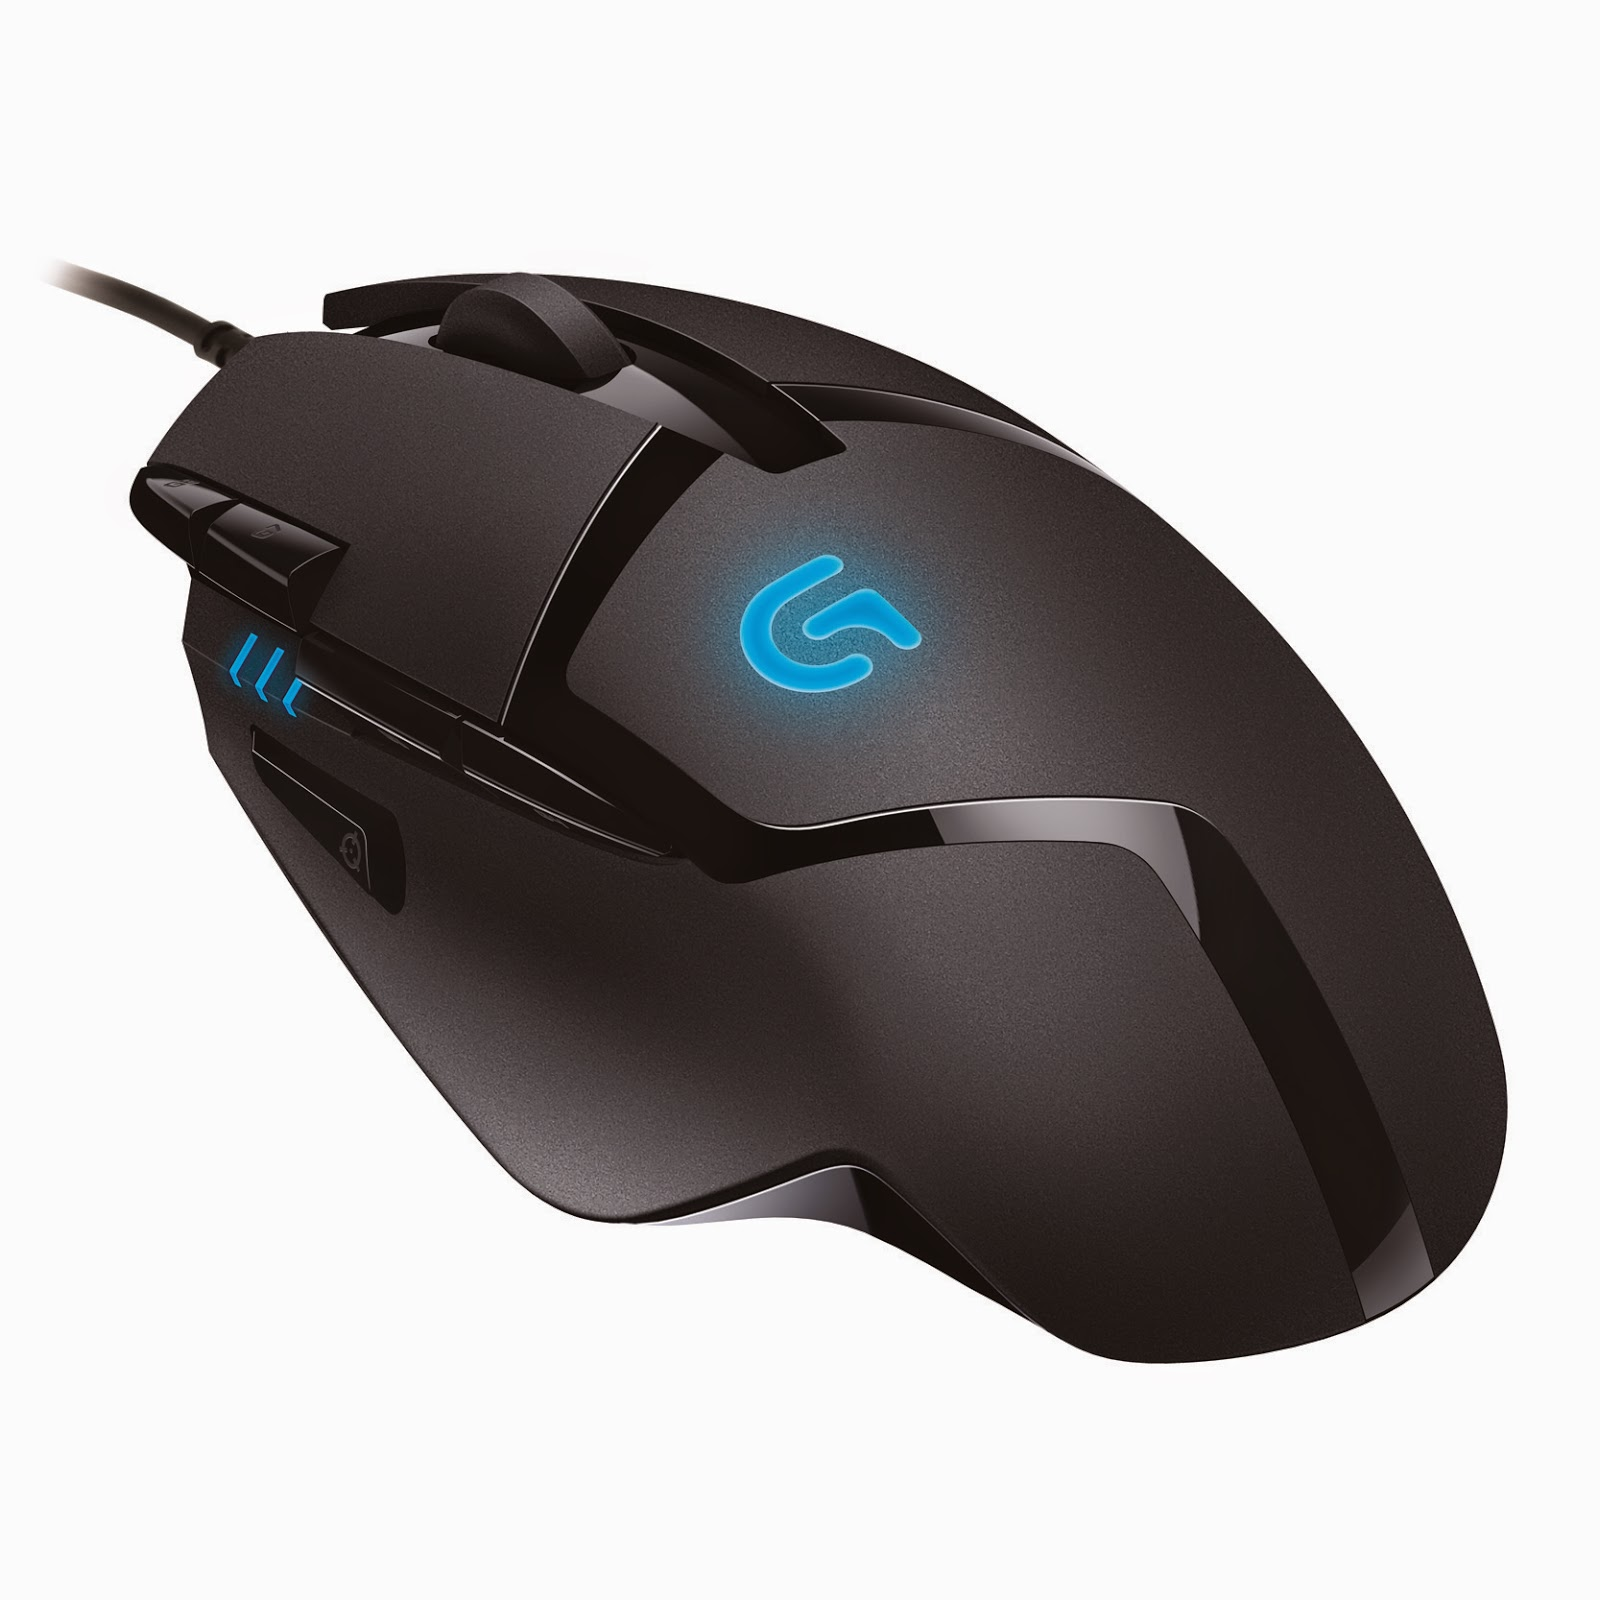 Logitech a leading innovator of gaming peripherals has introduced the fastest gaming mouse ever made the Logitech G402 Hyperion Fury™ Ultra Fast FPS